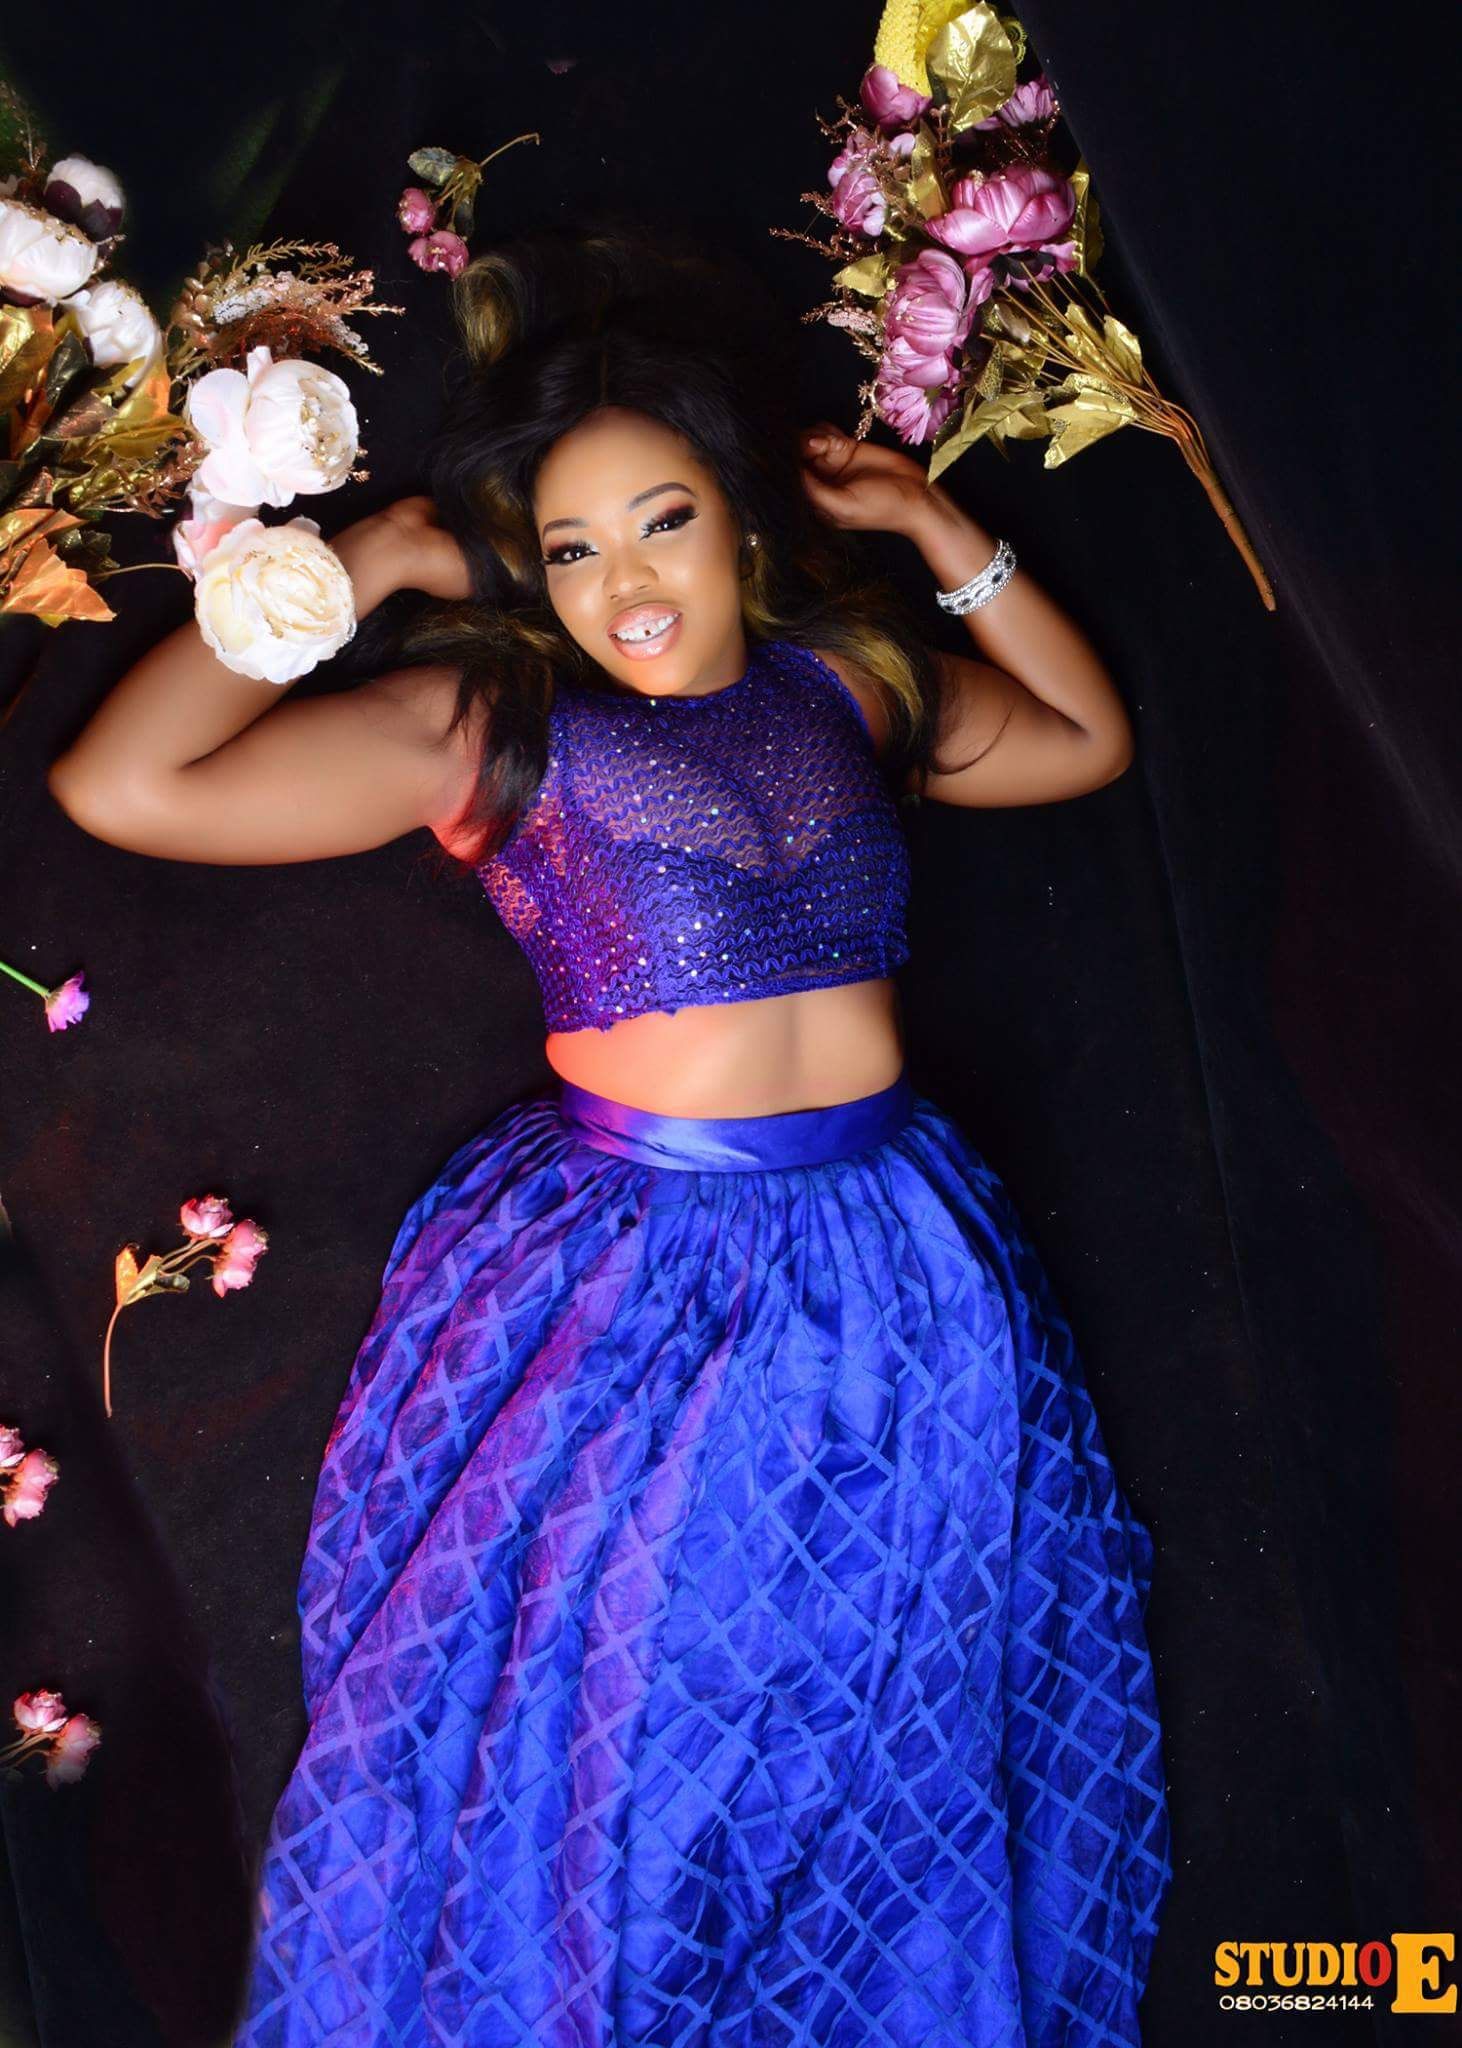 Between Tonto Dikeh and Miss Nollywood Nigeria, who rocks it well on birthday photoshoot